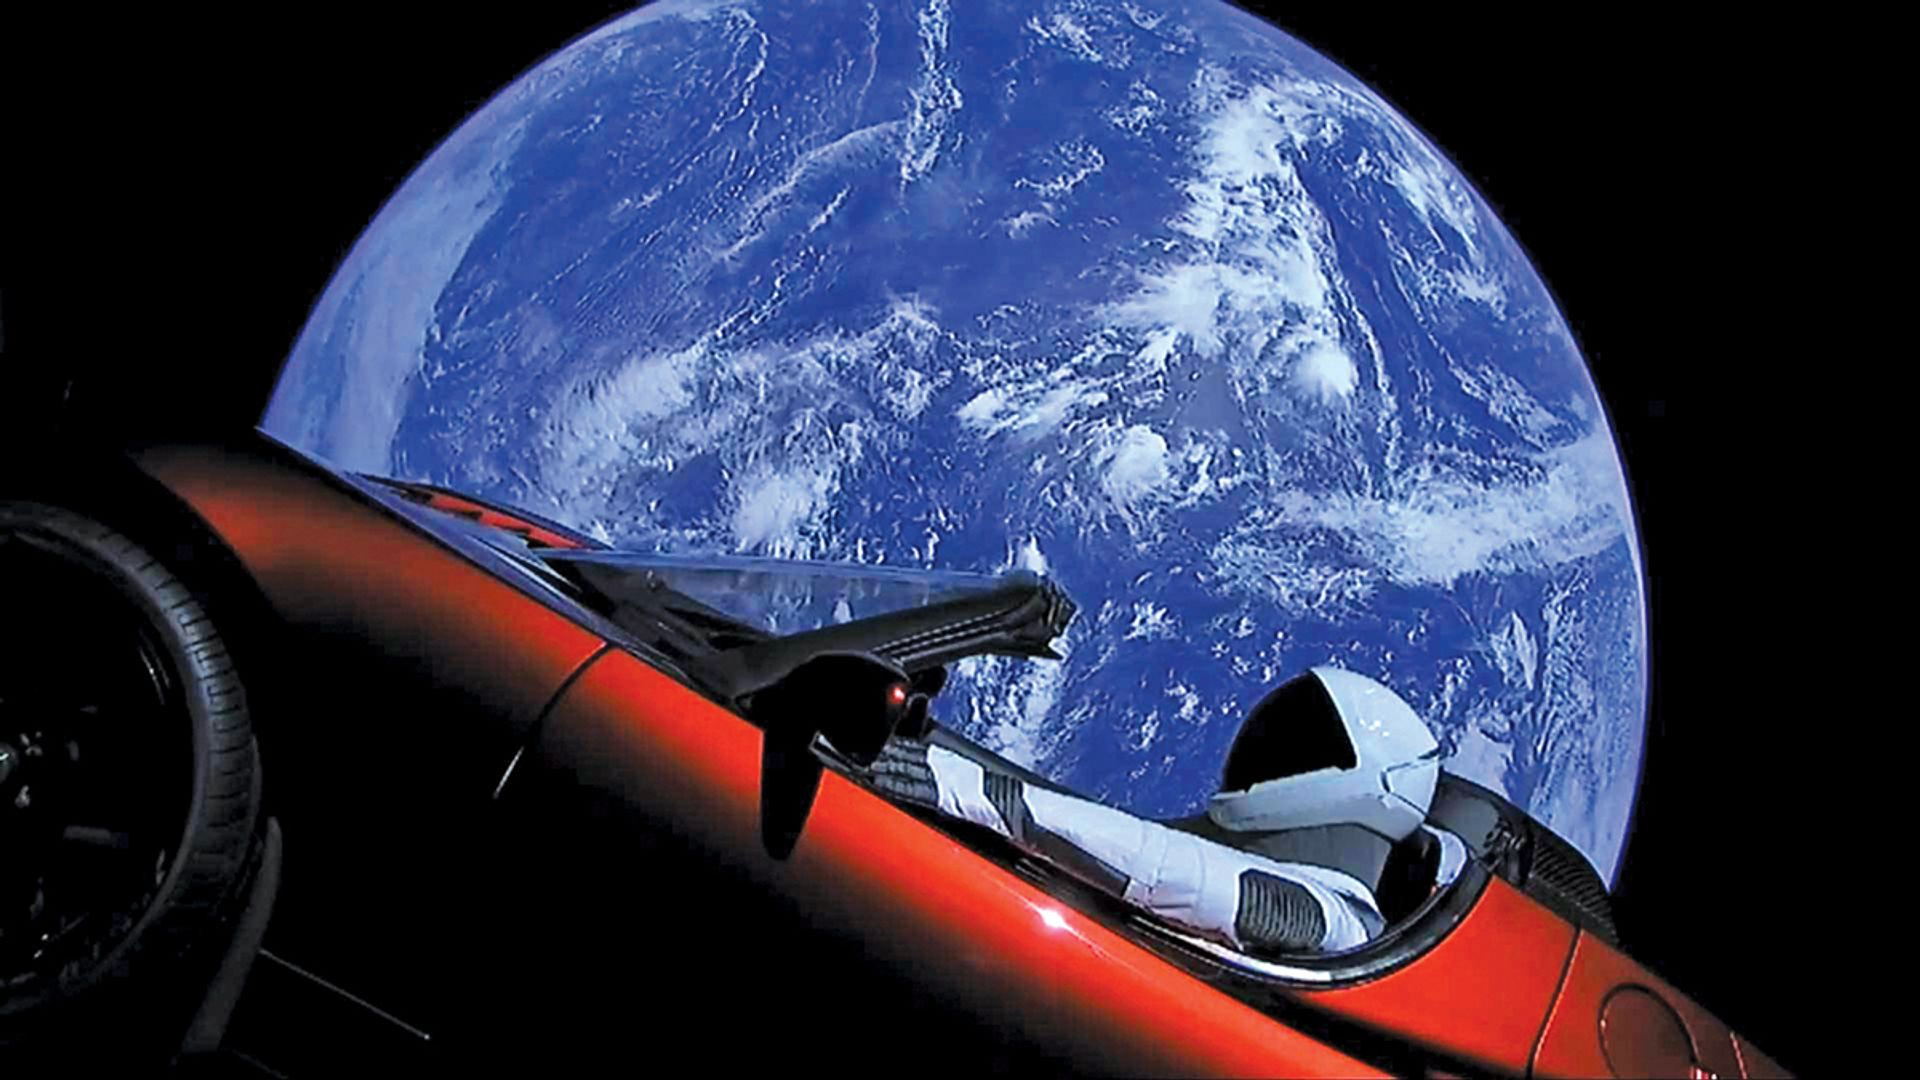 Space oddity: the Tesla sports car sent into space on Elon Musk's rocket © SpaceX Photos